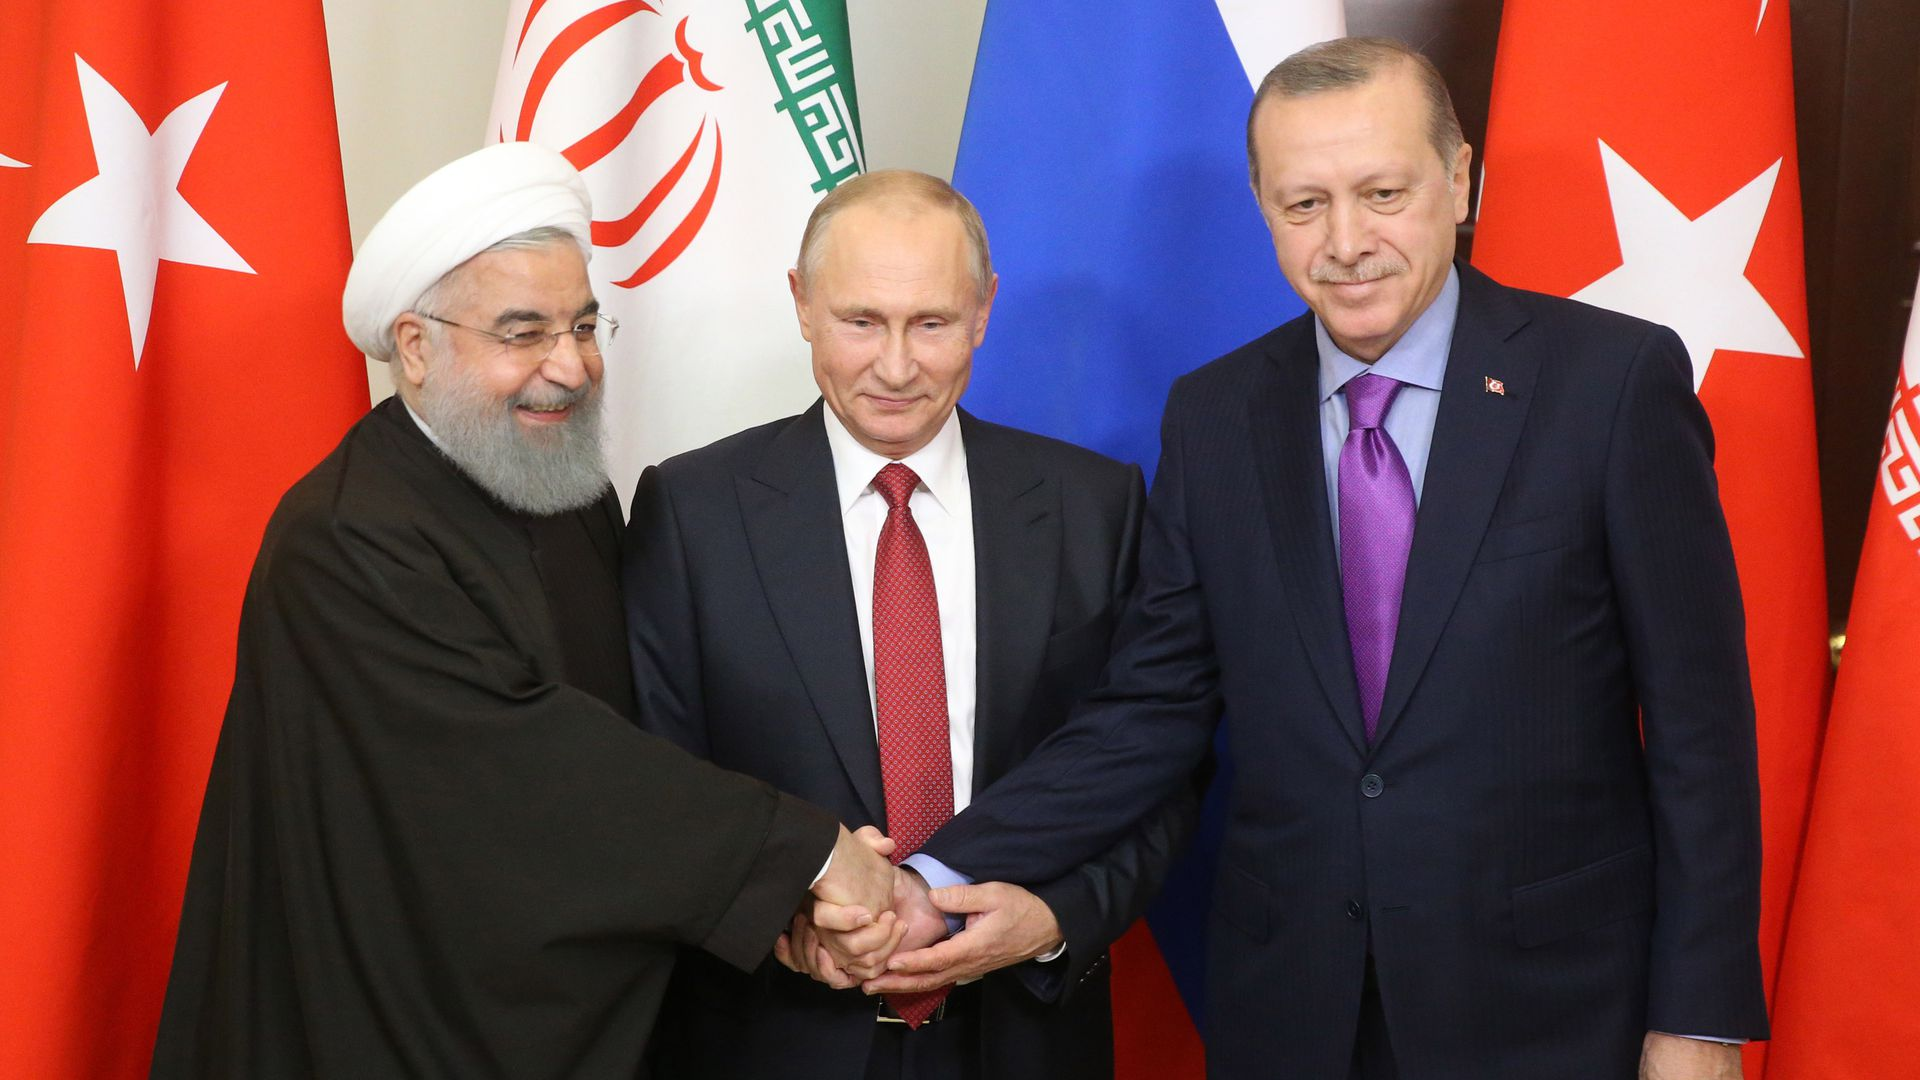 Russian President Vladimir Putin pose for a photo with Turkish President Recep Tayyip Erdogan and Iranian President Hassan Rouhani prior to their talks at Black Sea resort state residence